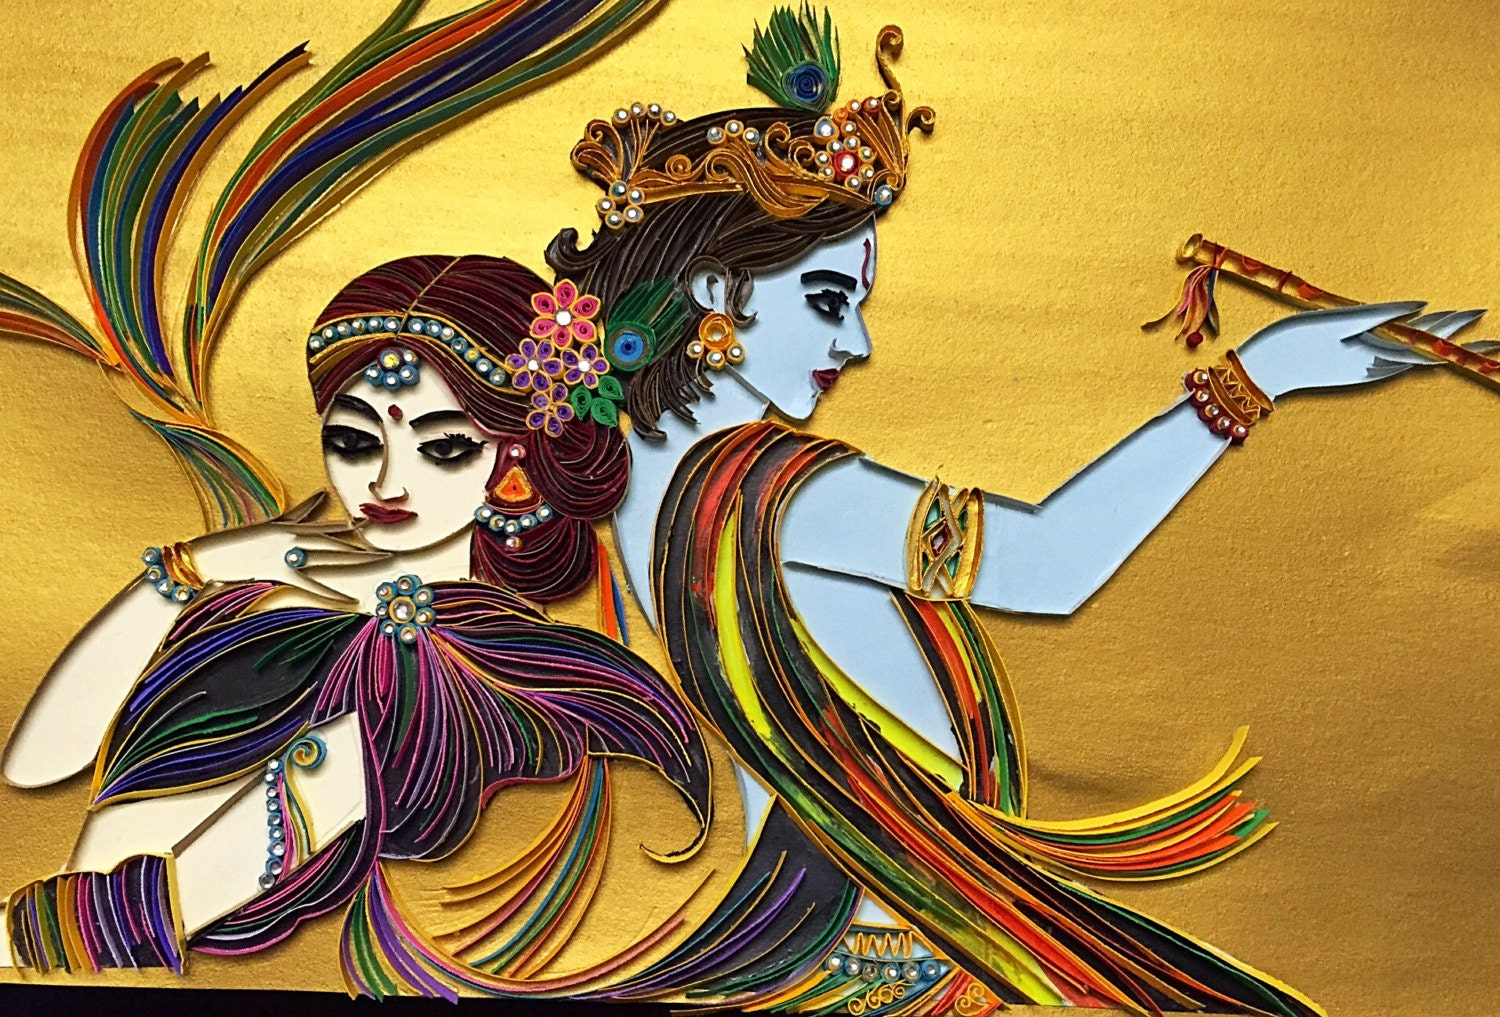 Quilled Radha krishna from sarithaquilling on Etsy Studio